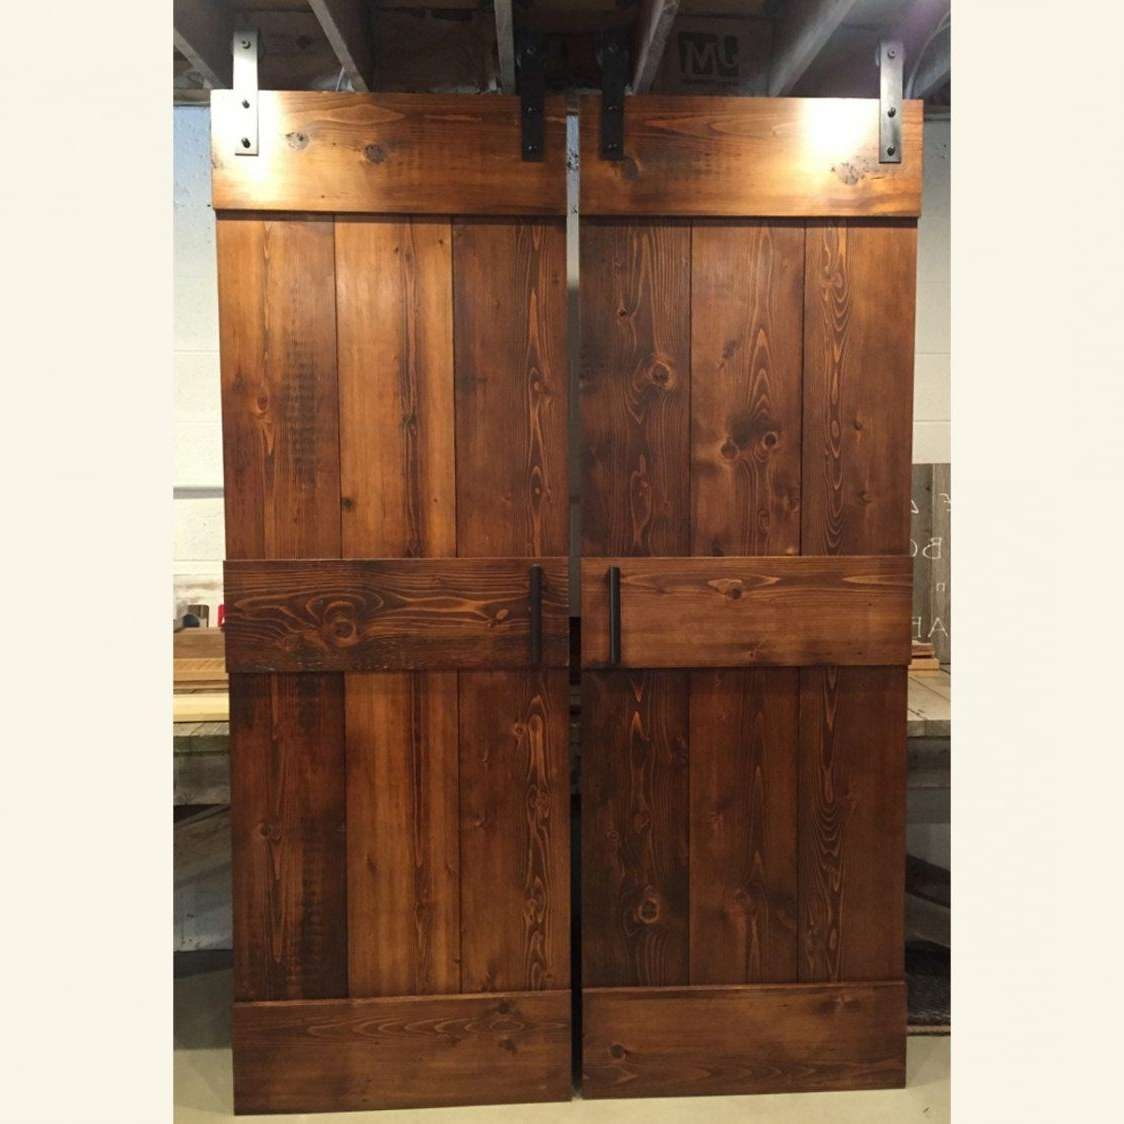 Farm Style Barn Door | Furniture From The Barn Inside White Pine Sideboards (View 8 of 20)